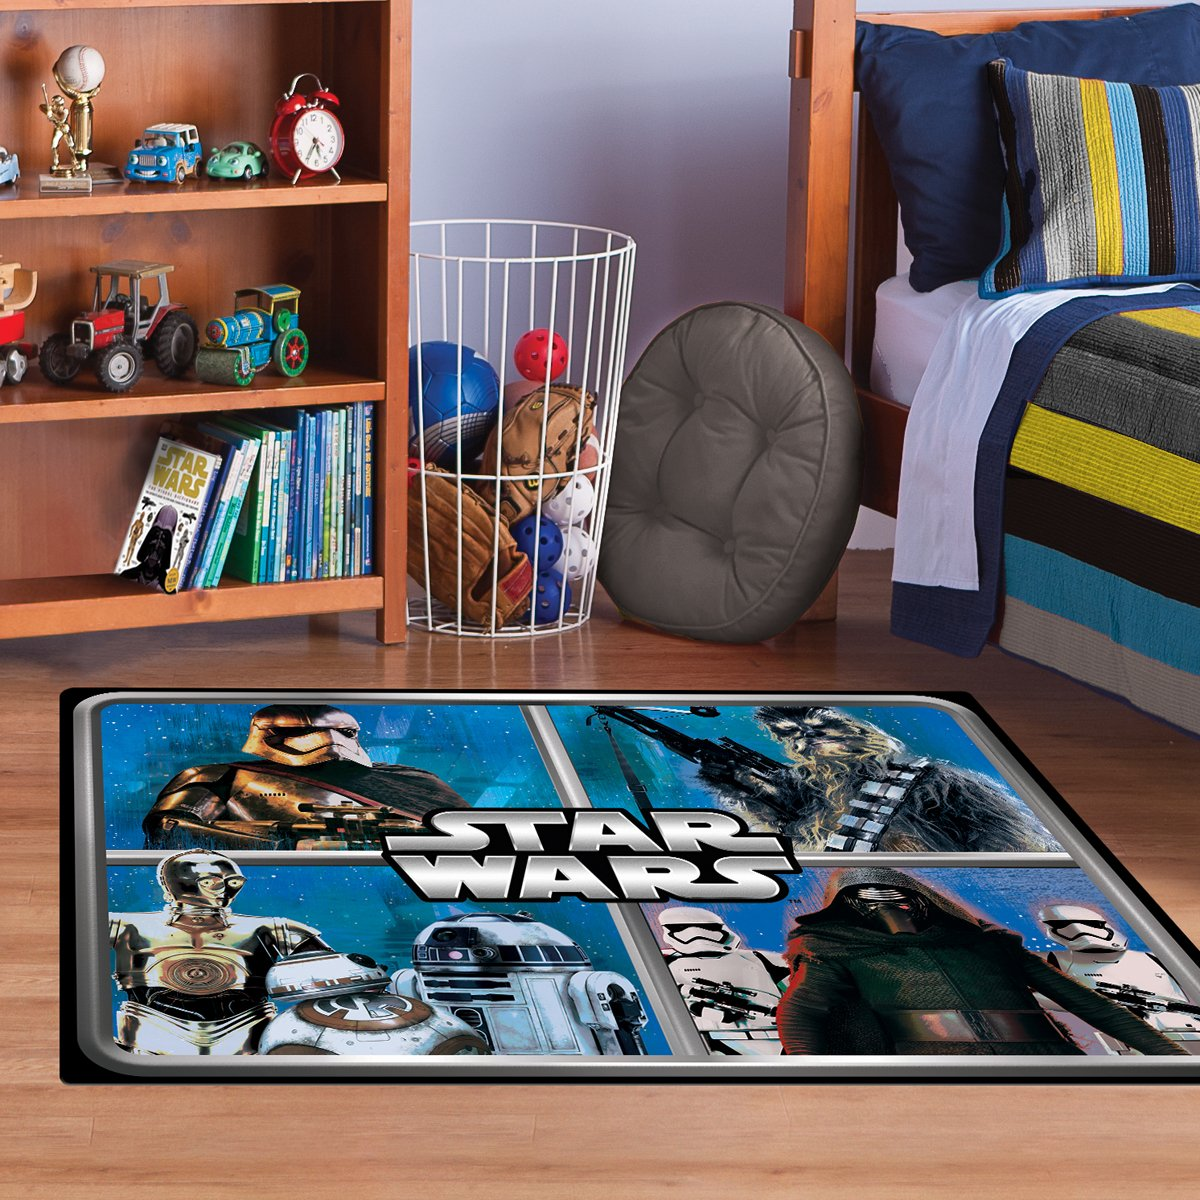 "Star Wars Rug HD ep 7 Chewbacca, R2D2, Captain Phasma, Kylo Ren Bedding Wall Decals Blue Area Rugs , 40""x56"""